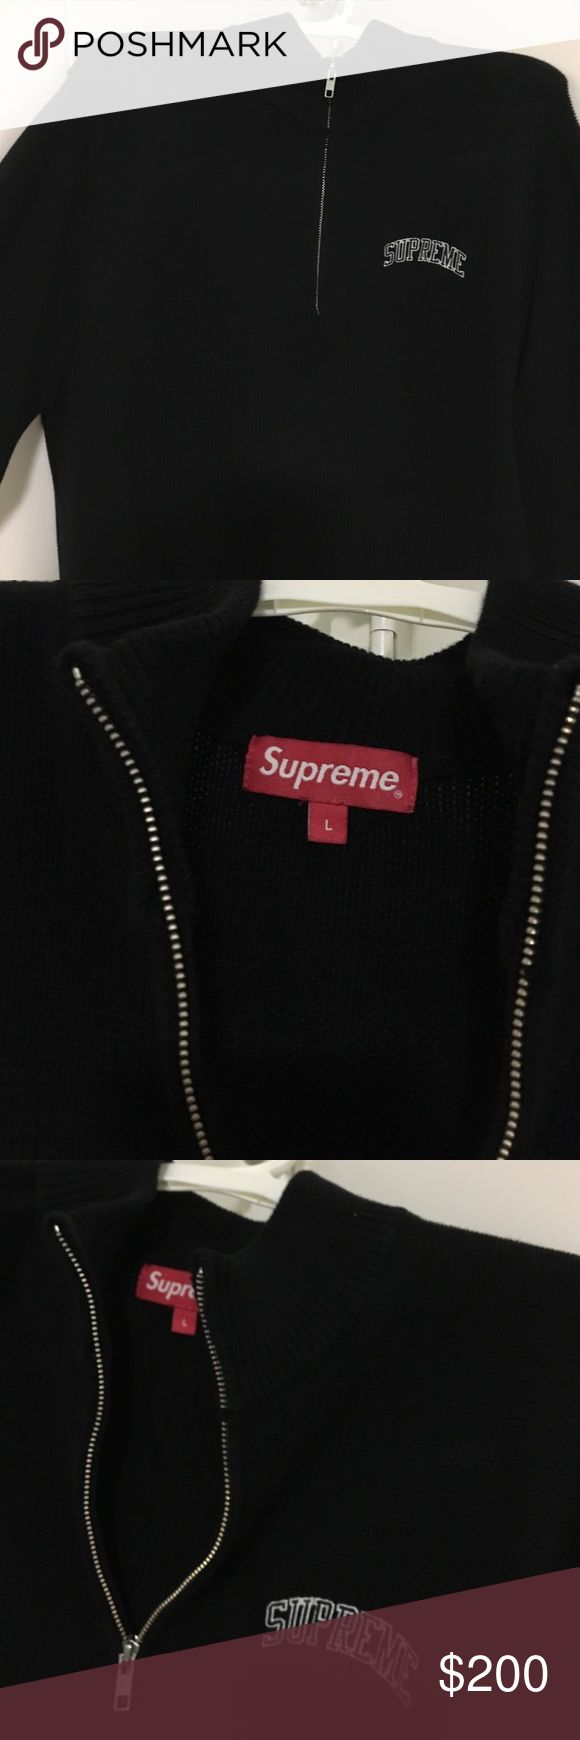 Supreme mock zip up Worn a couple times- bought online for 160 no longer available online or in store- could fit medium as well- comes w supreme bag and stickers Supreme Jackets & Coats